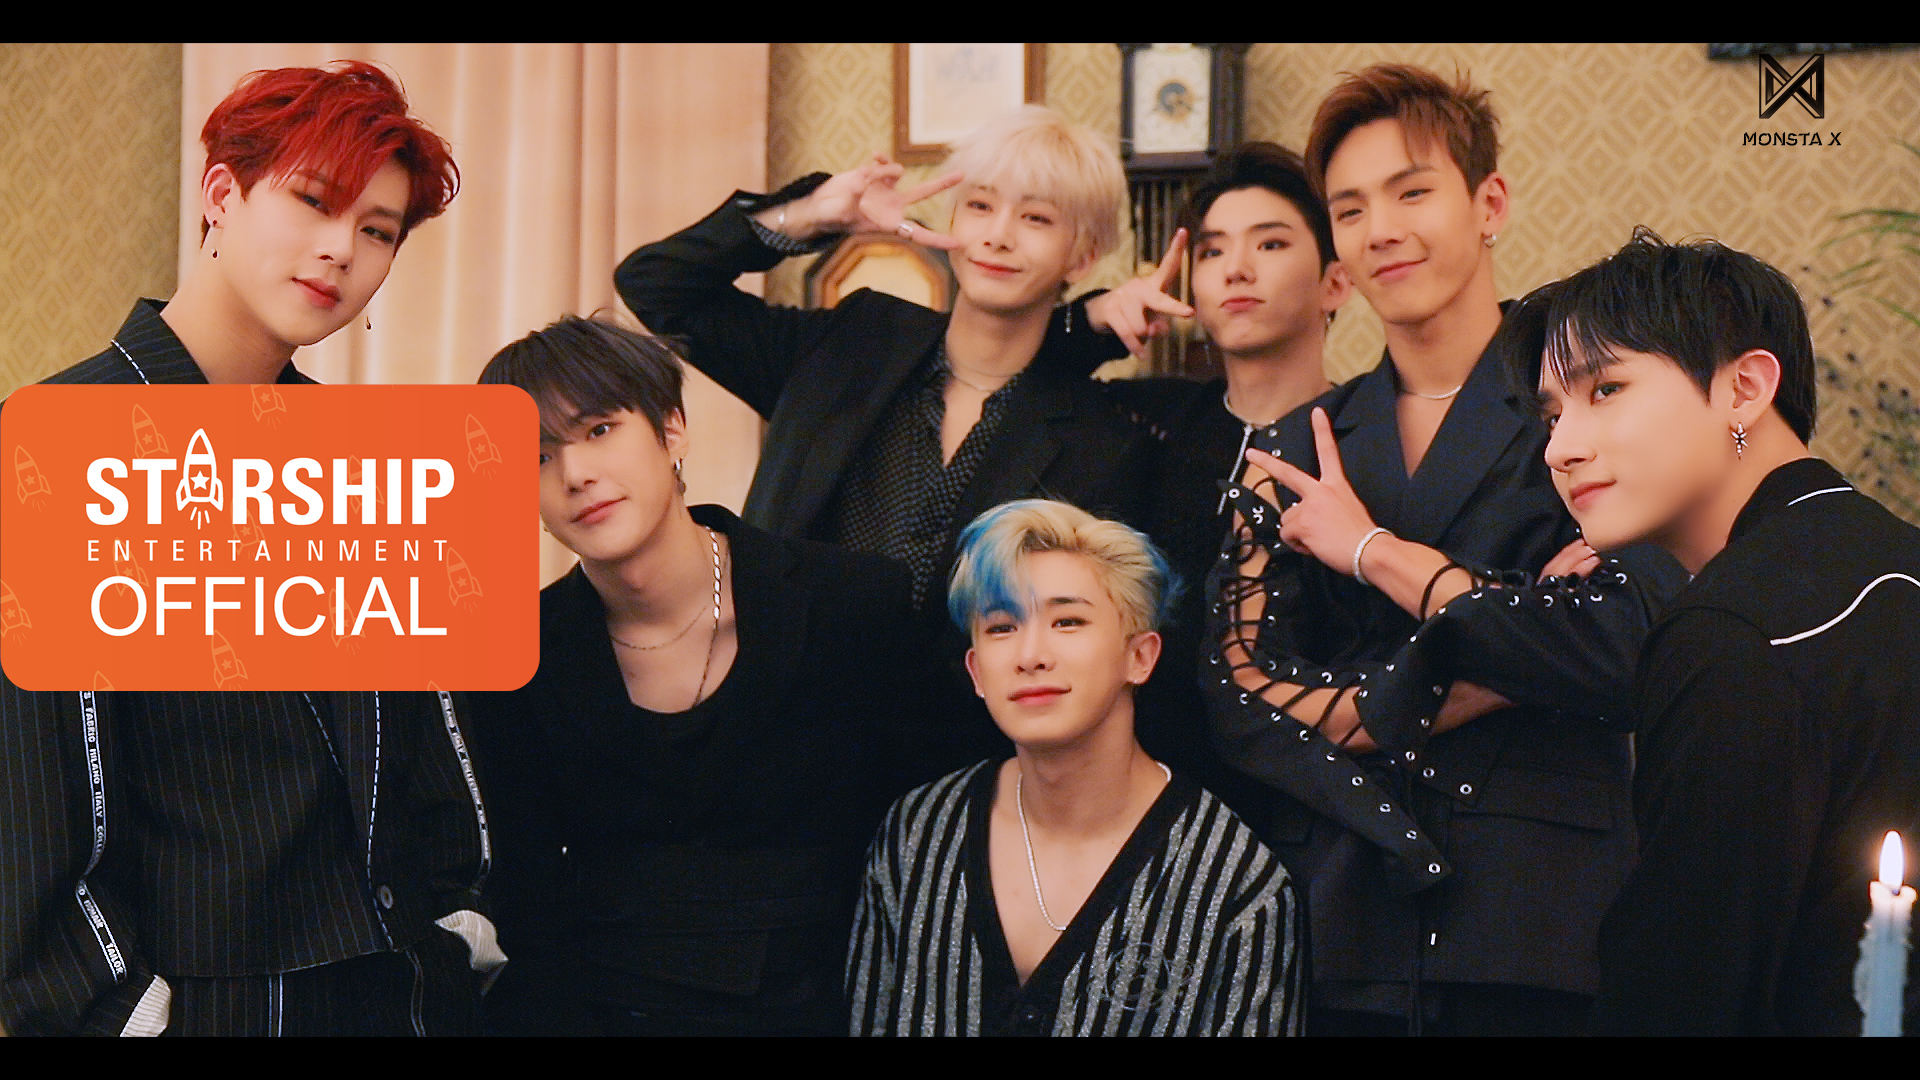 [Making Film] 몬스타엑스 (MONSTA X) - 'Alligator' PHOTOSHOOT